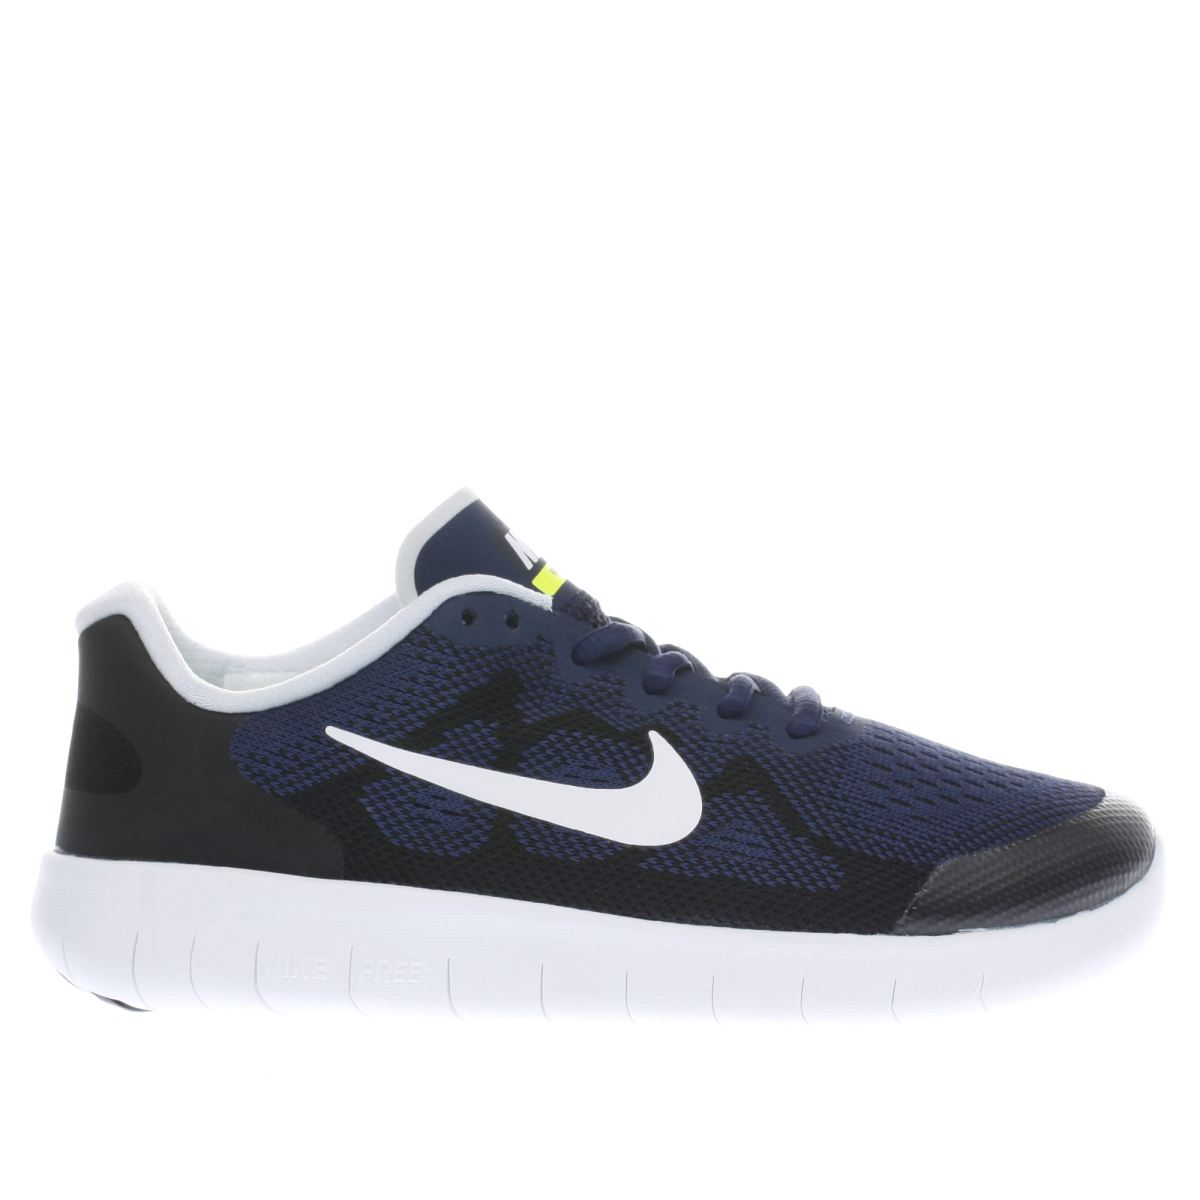 nike navy & black free rn 2 Boys Youth Trainers